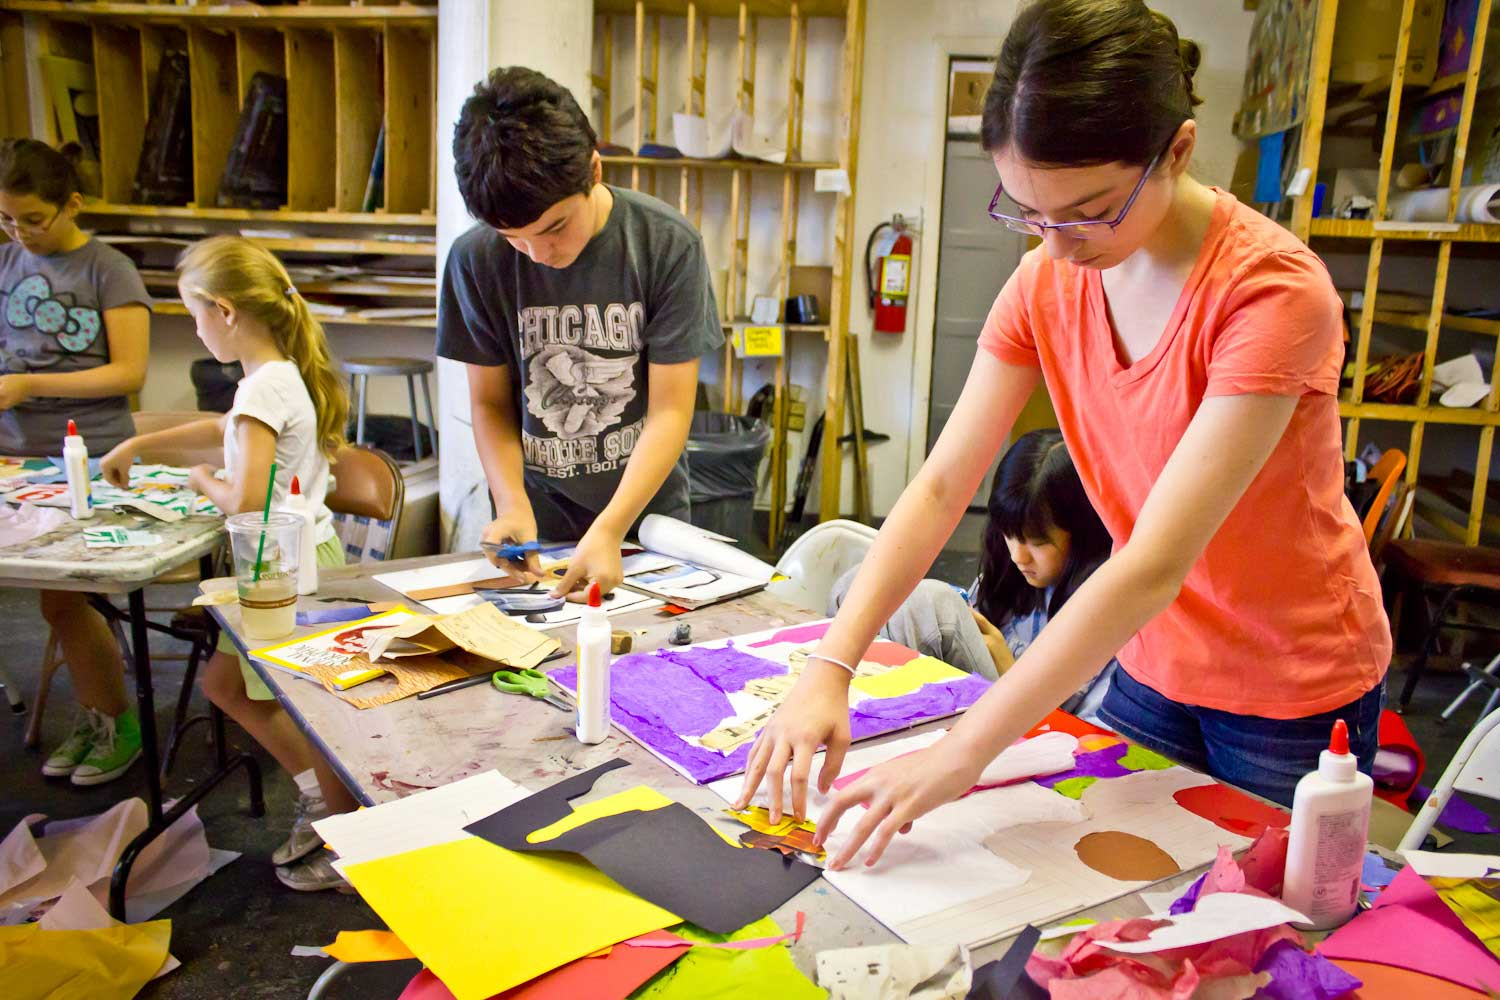 art classes and camps for kids in chicago lillstreet art